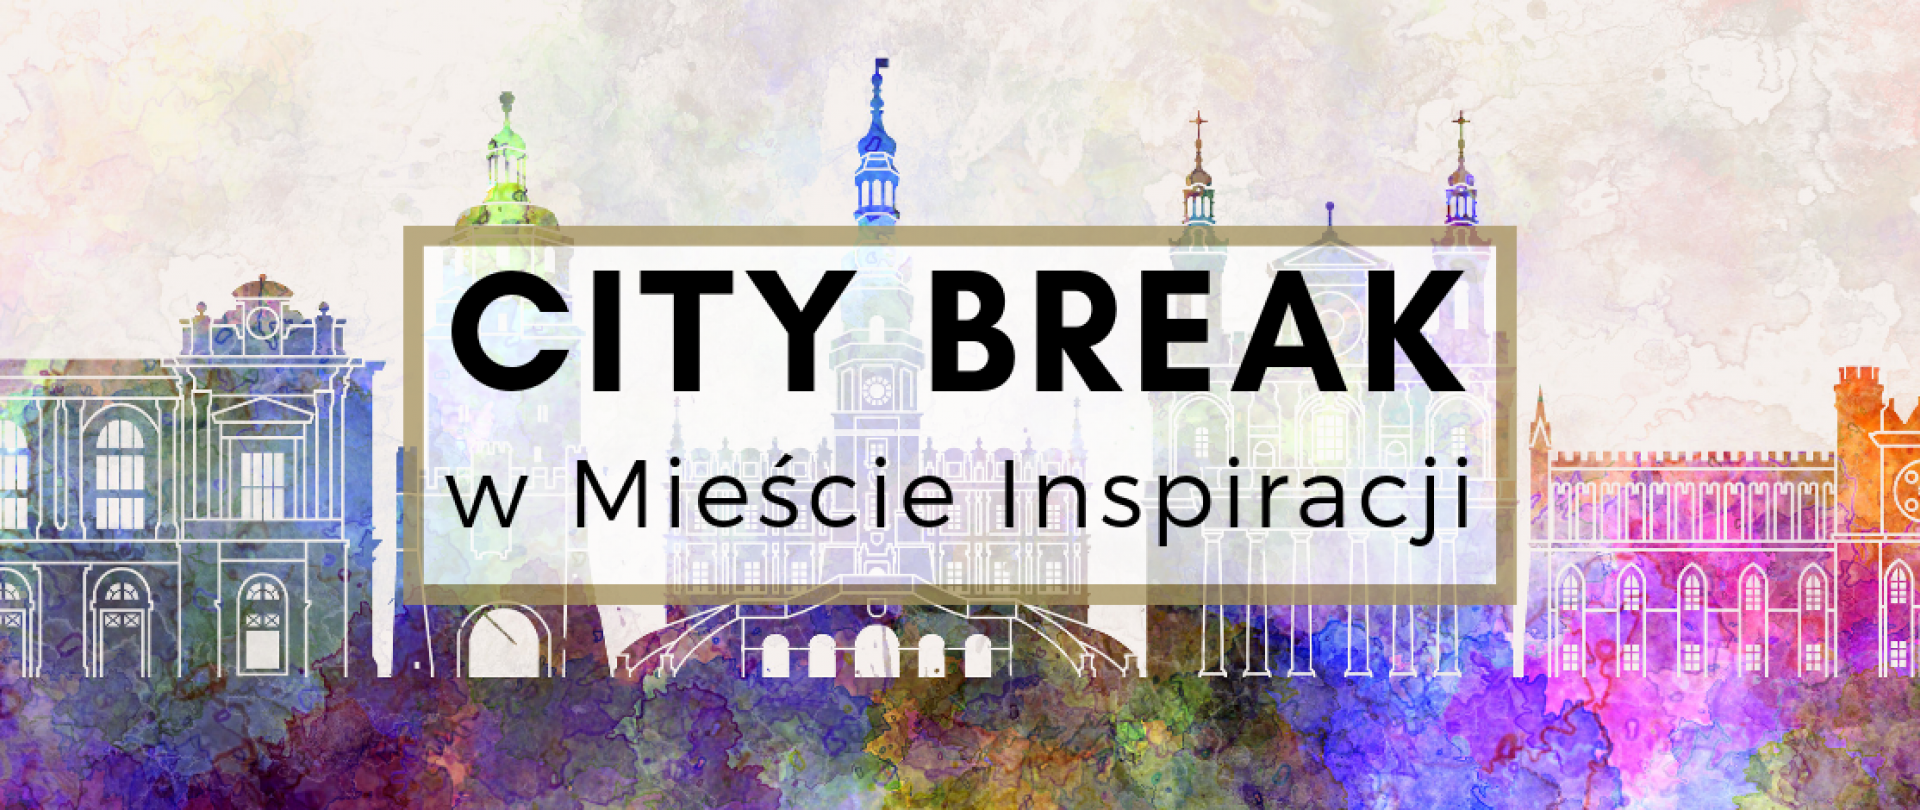 Luxury City Break in the City of Inspiration